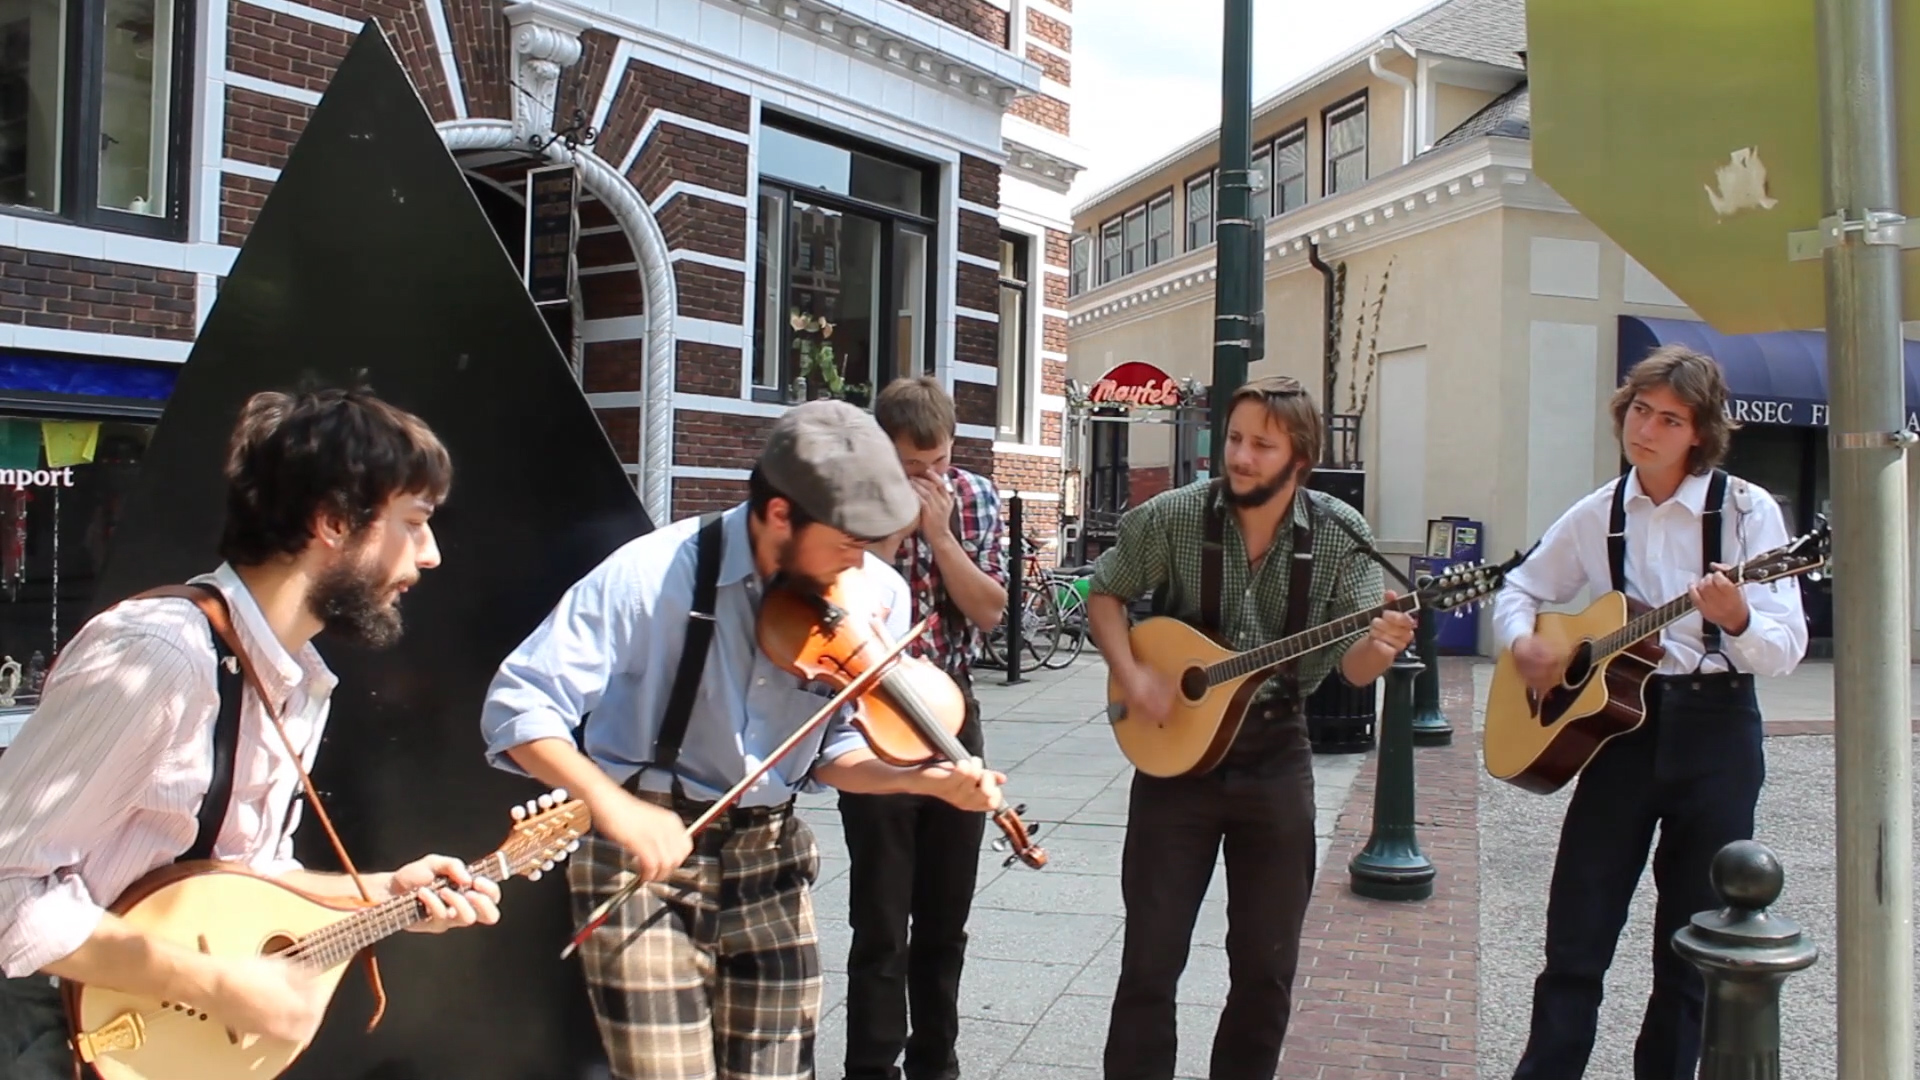 Tomb Nelson and the Stillwater Hobos perform a spirited medley